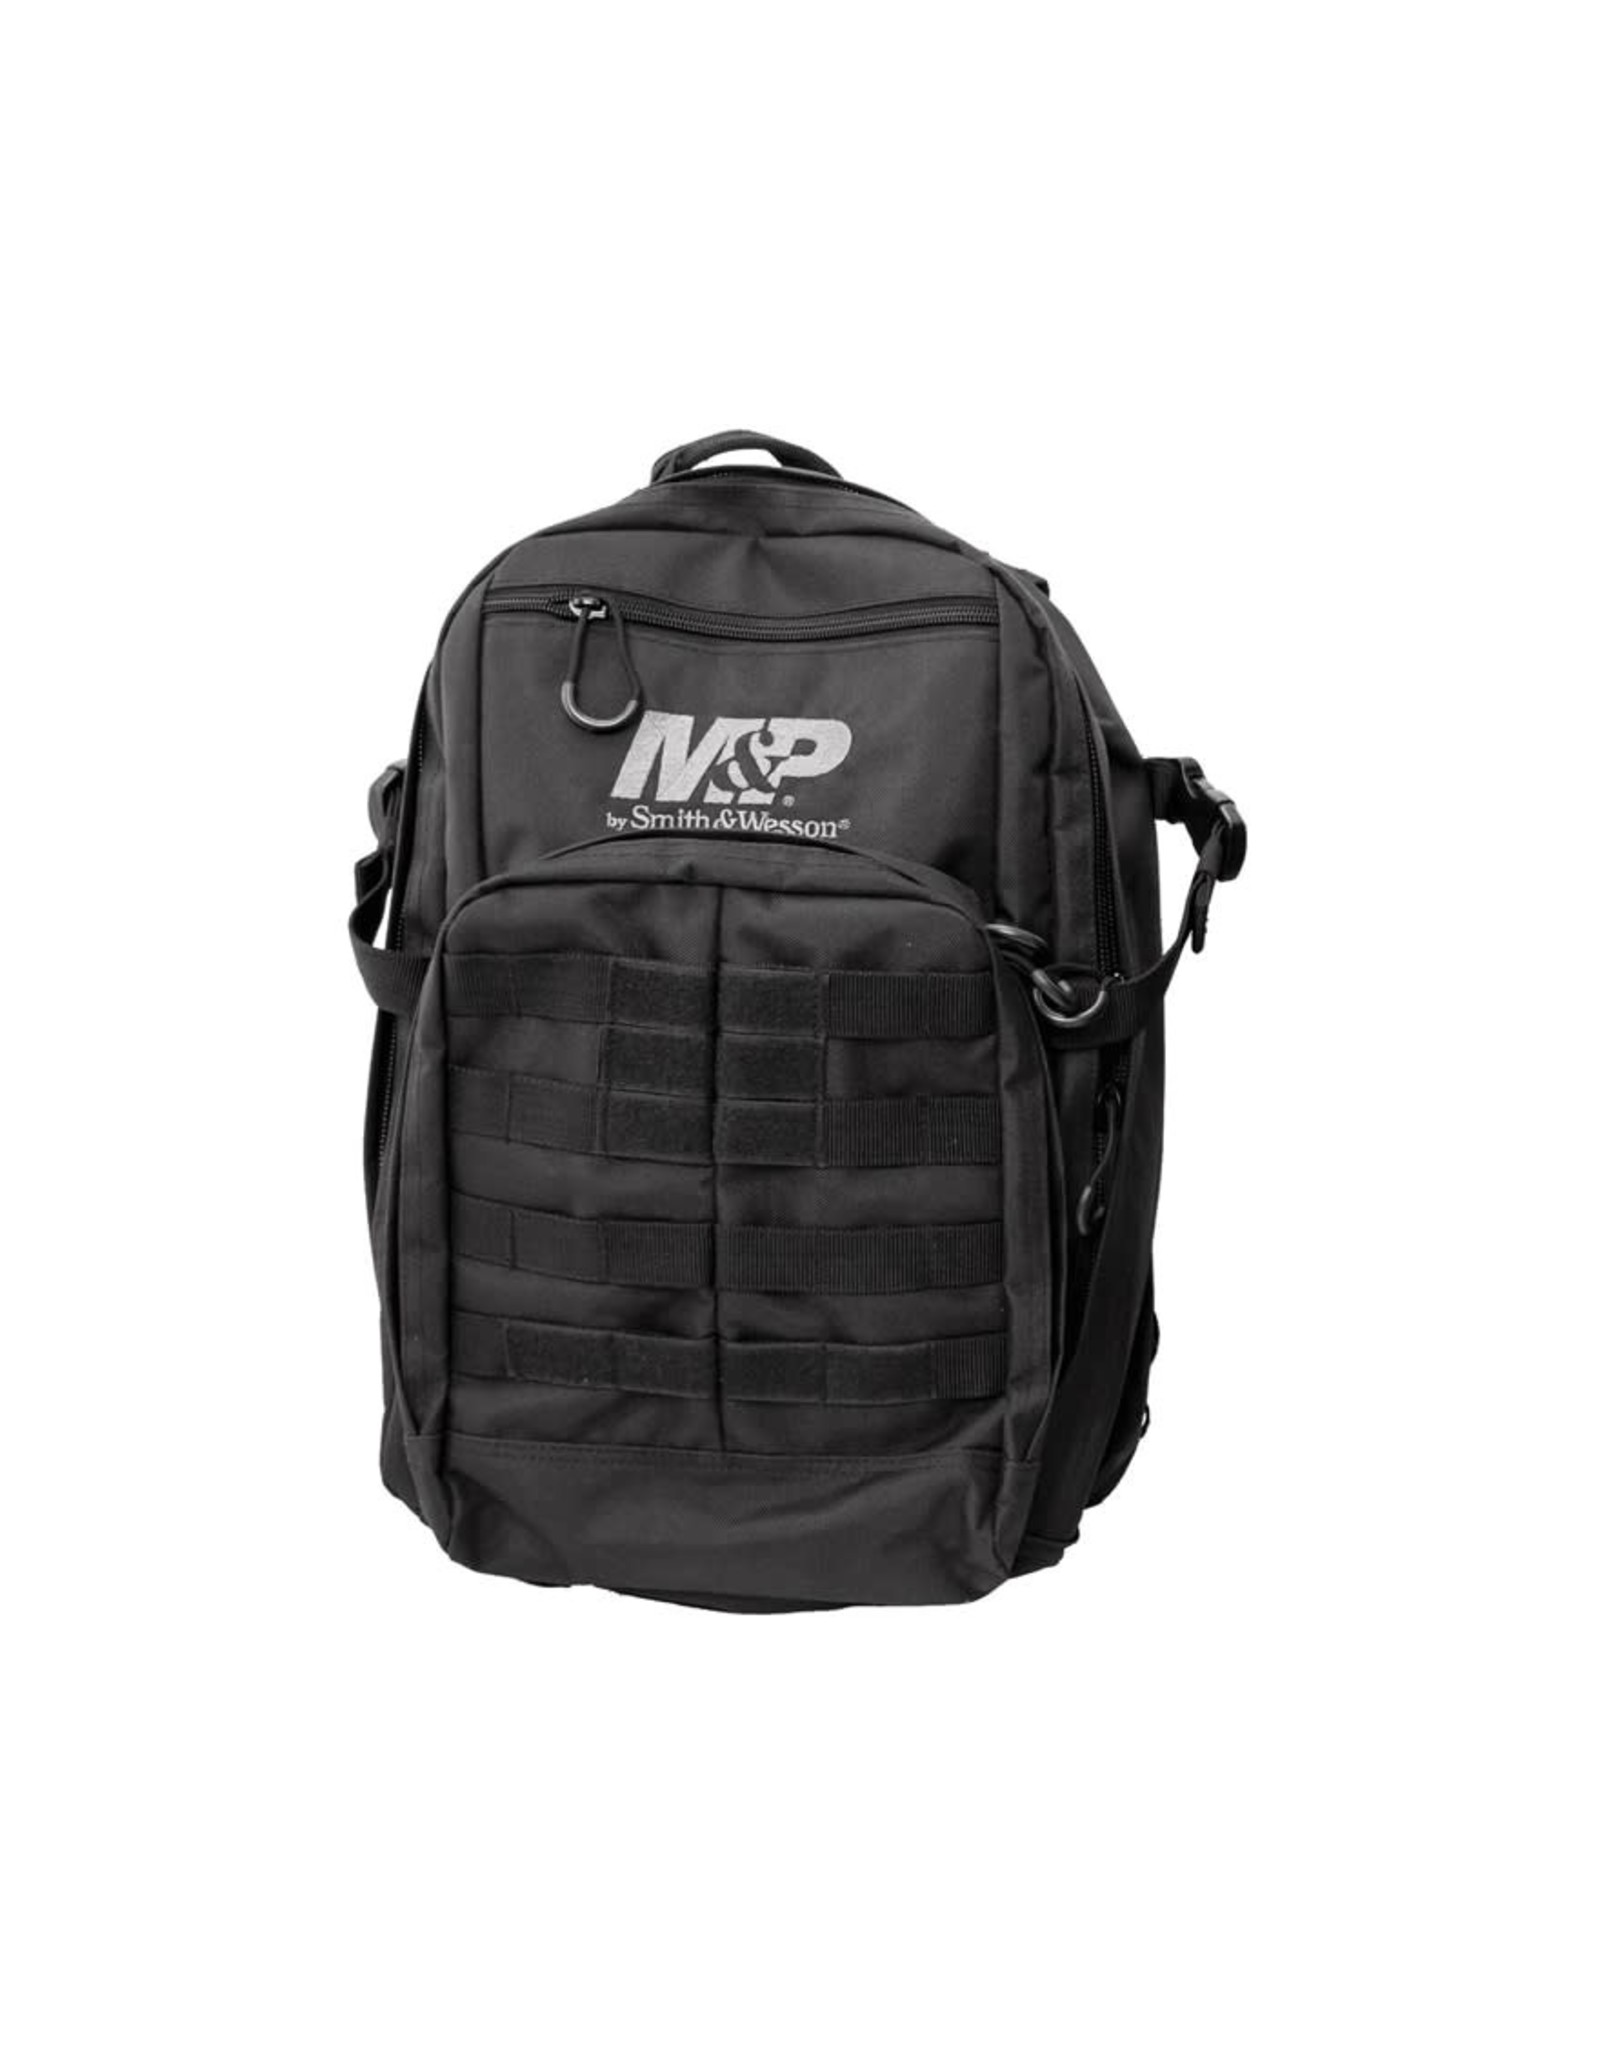 Smith & Wesson Smith & Wesson - M&P Duty Series - Backpack